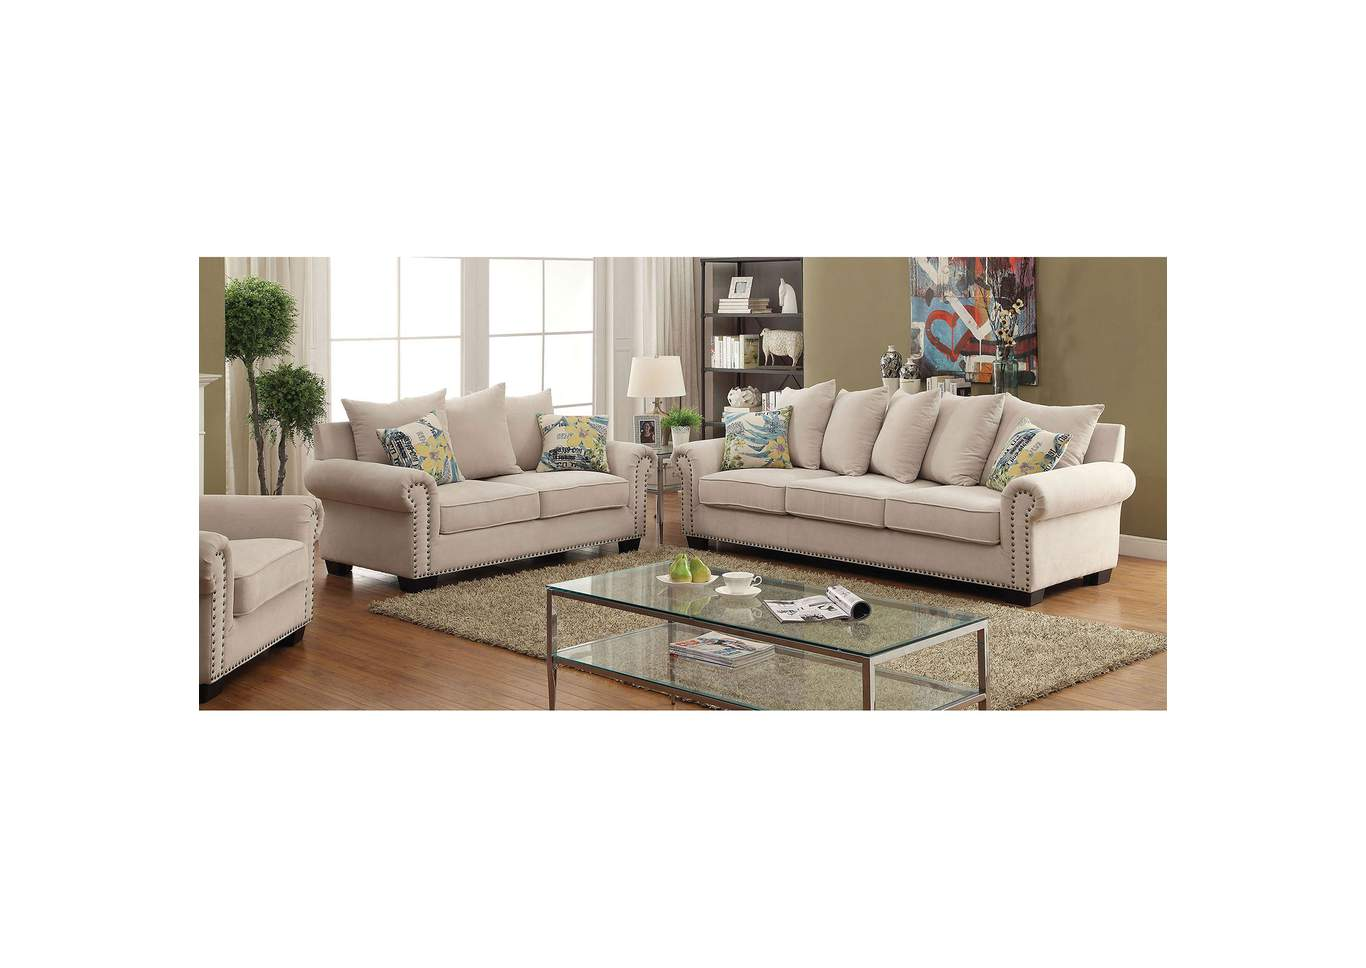 Skyler Ivory Chenille Sofa And Loveseat W/Pillows,Furniture Of America